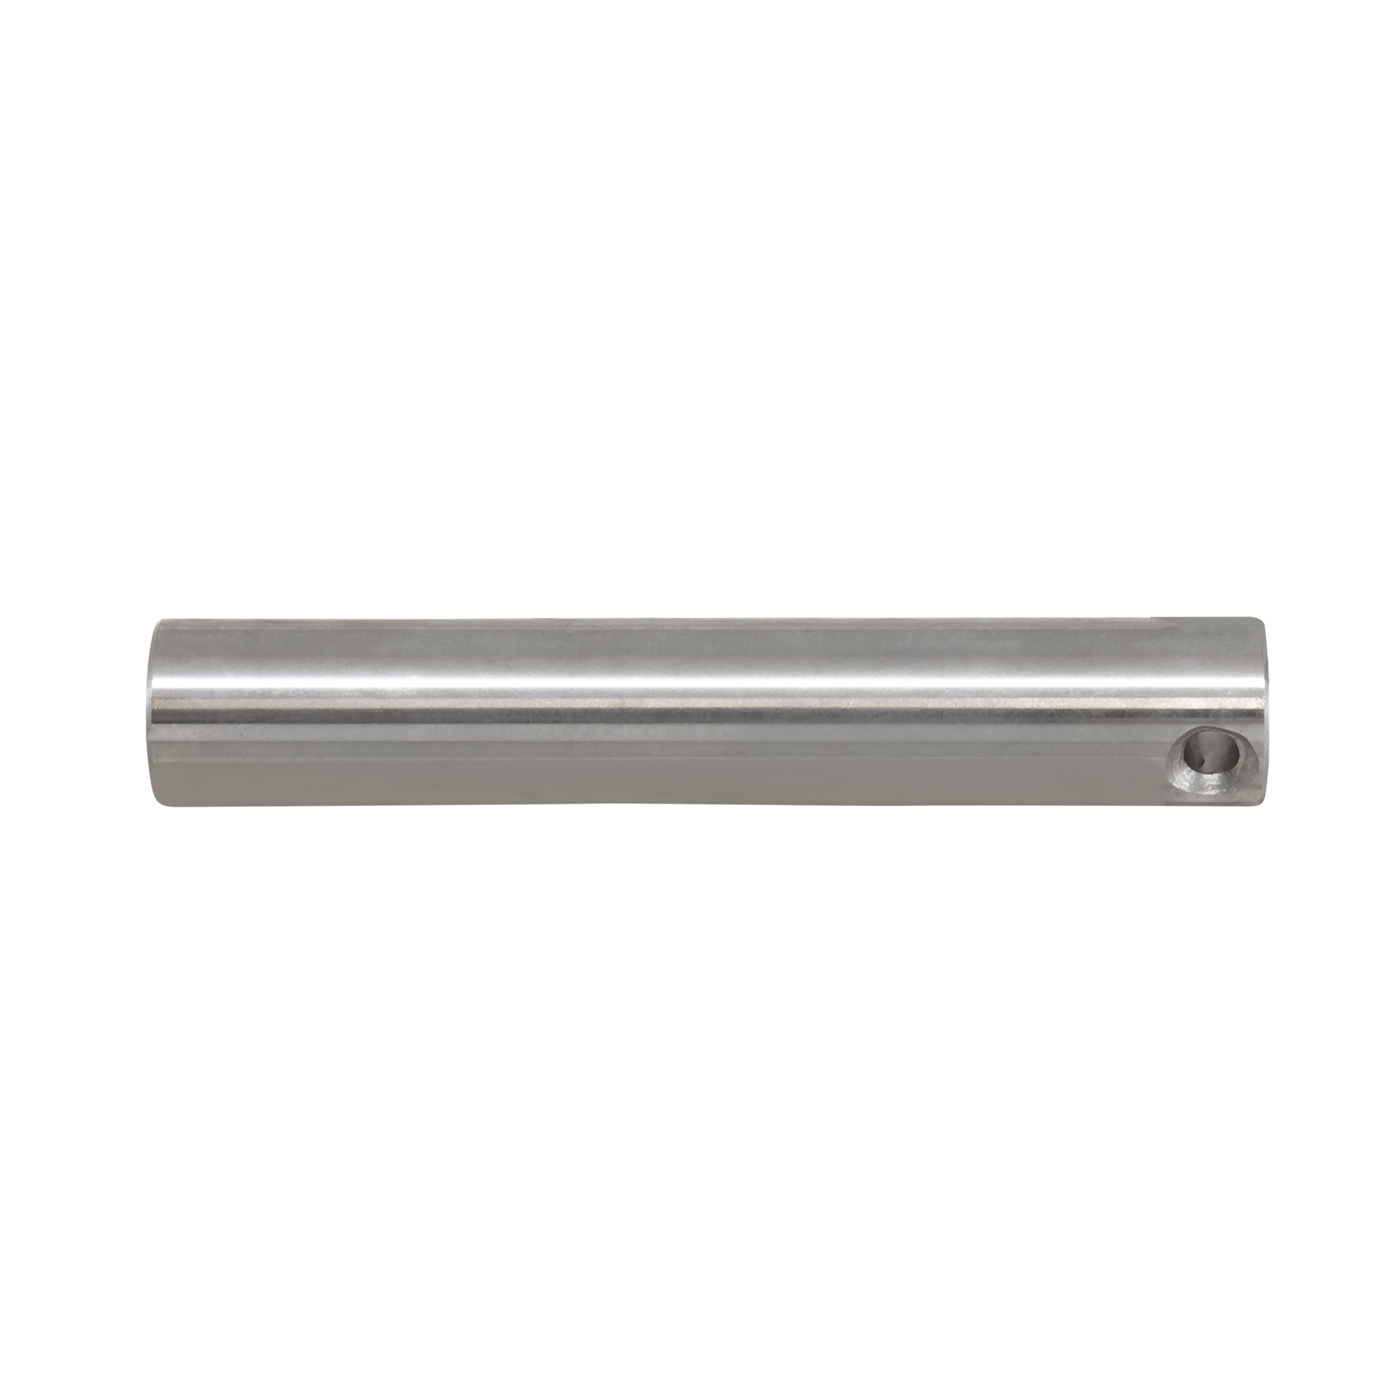 YSPXP-016 - Model 35 TracLoc & standard Open cross pin shaft, bolt design, 0.716